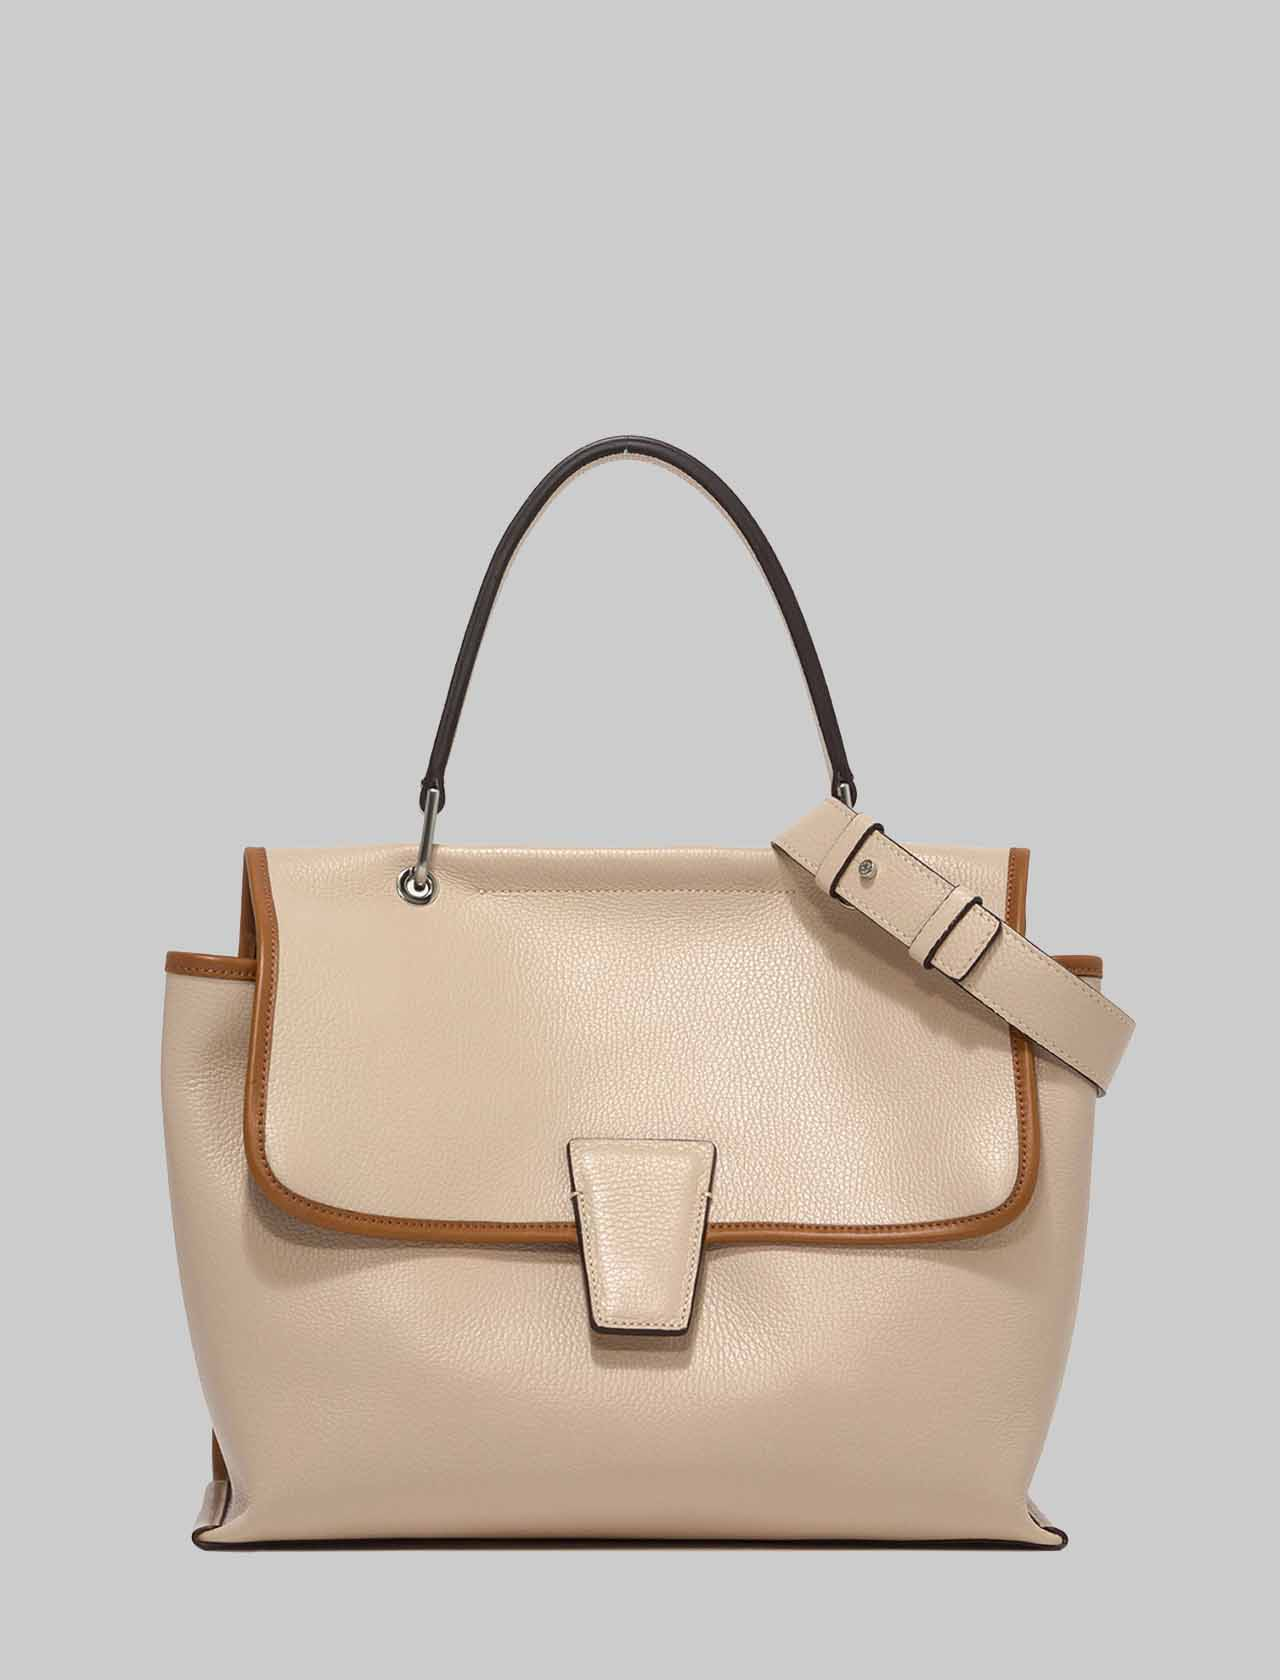 Woman Elettra Shoulder Bag in Cream Leather and Leather Carryover with Adjustable and Removable Shoulder Strap Gianni Chiarini   Bags and backpacks   BS863211764